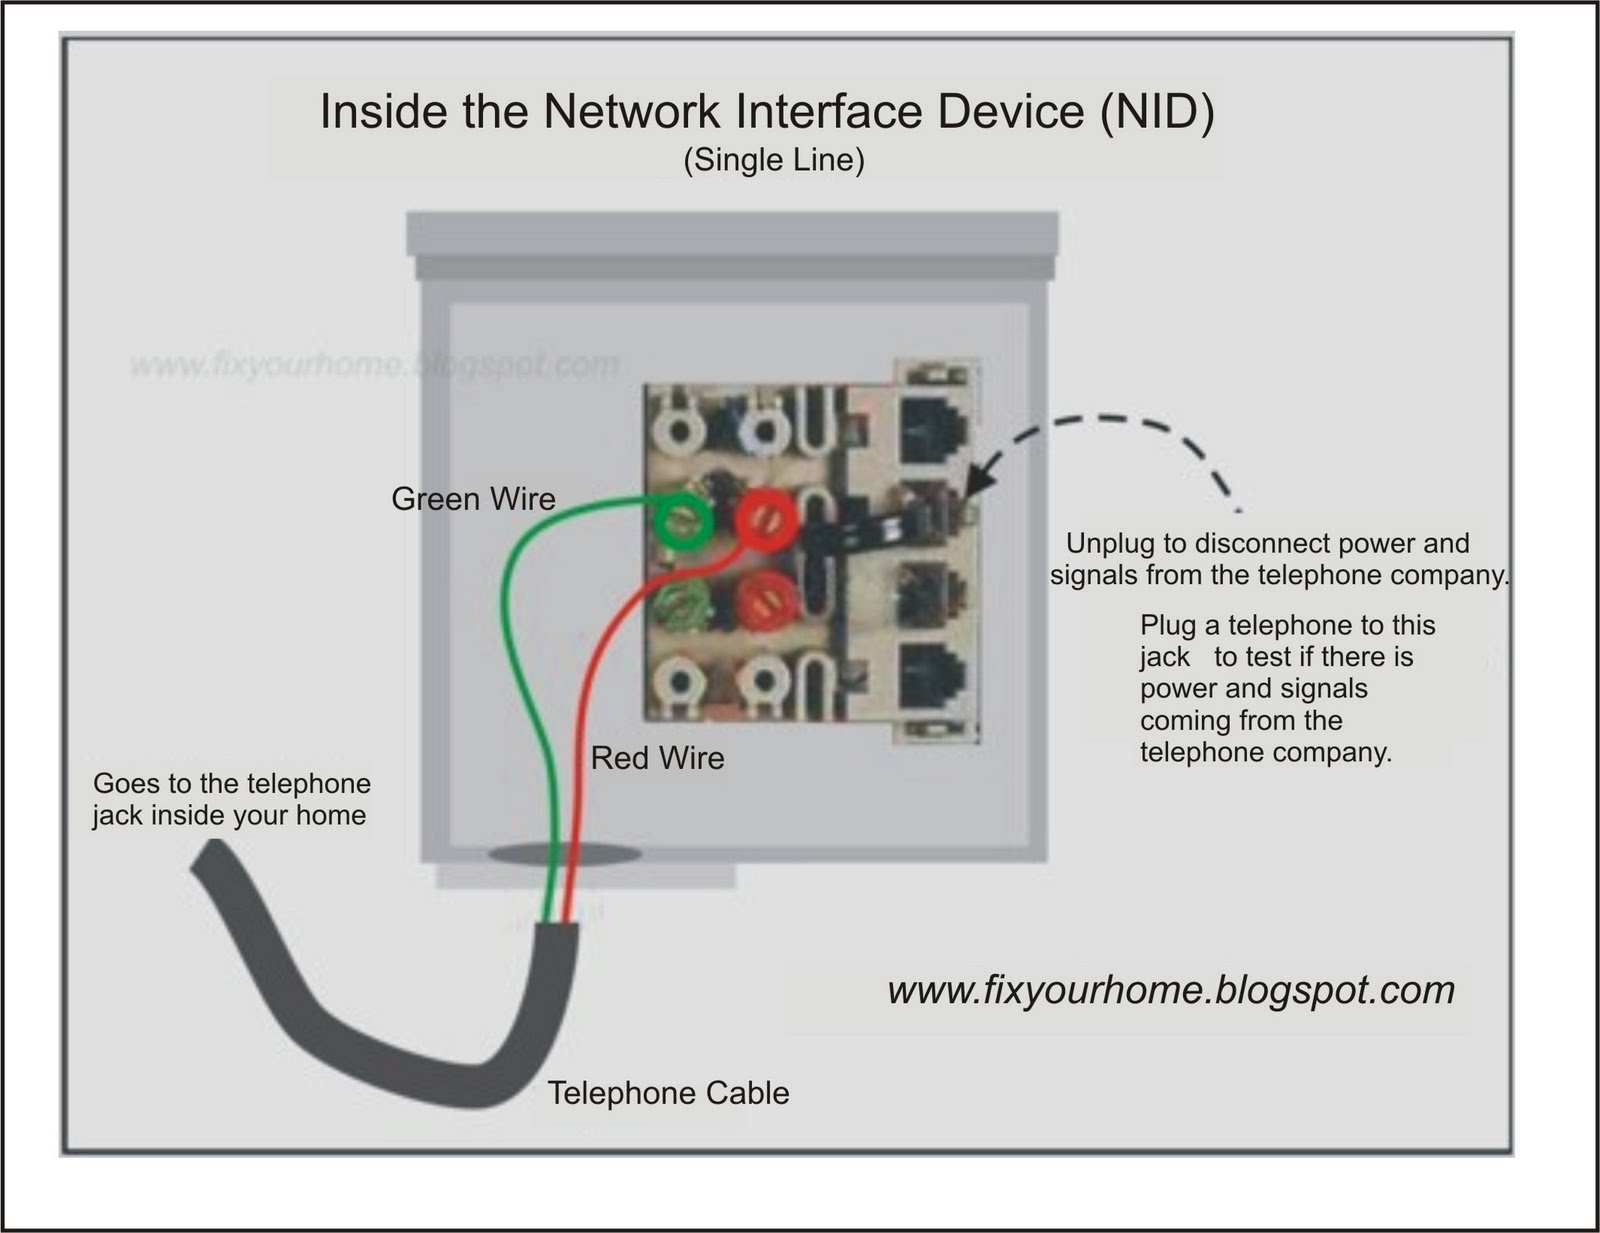 Fix Your Home: Telephone Network Interface Device (NID)